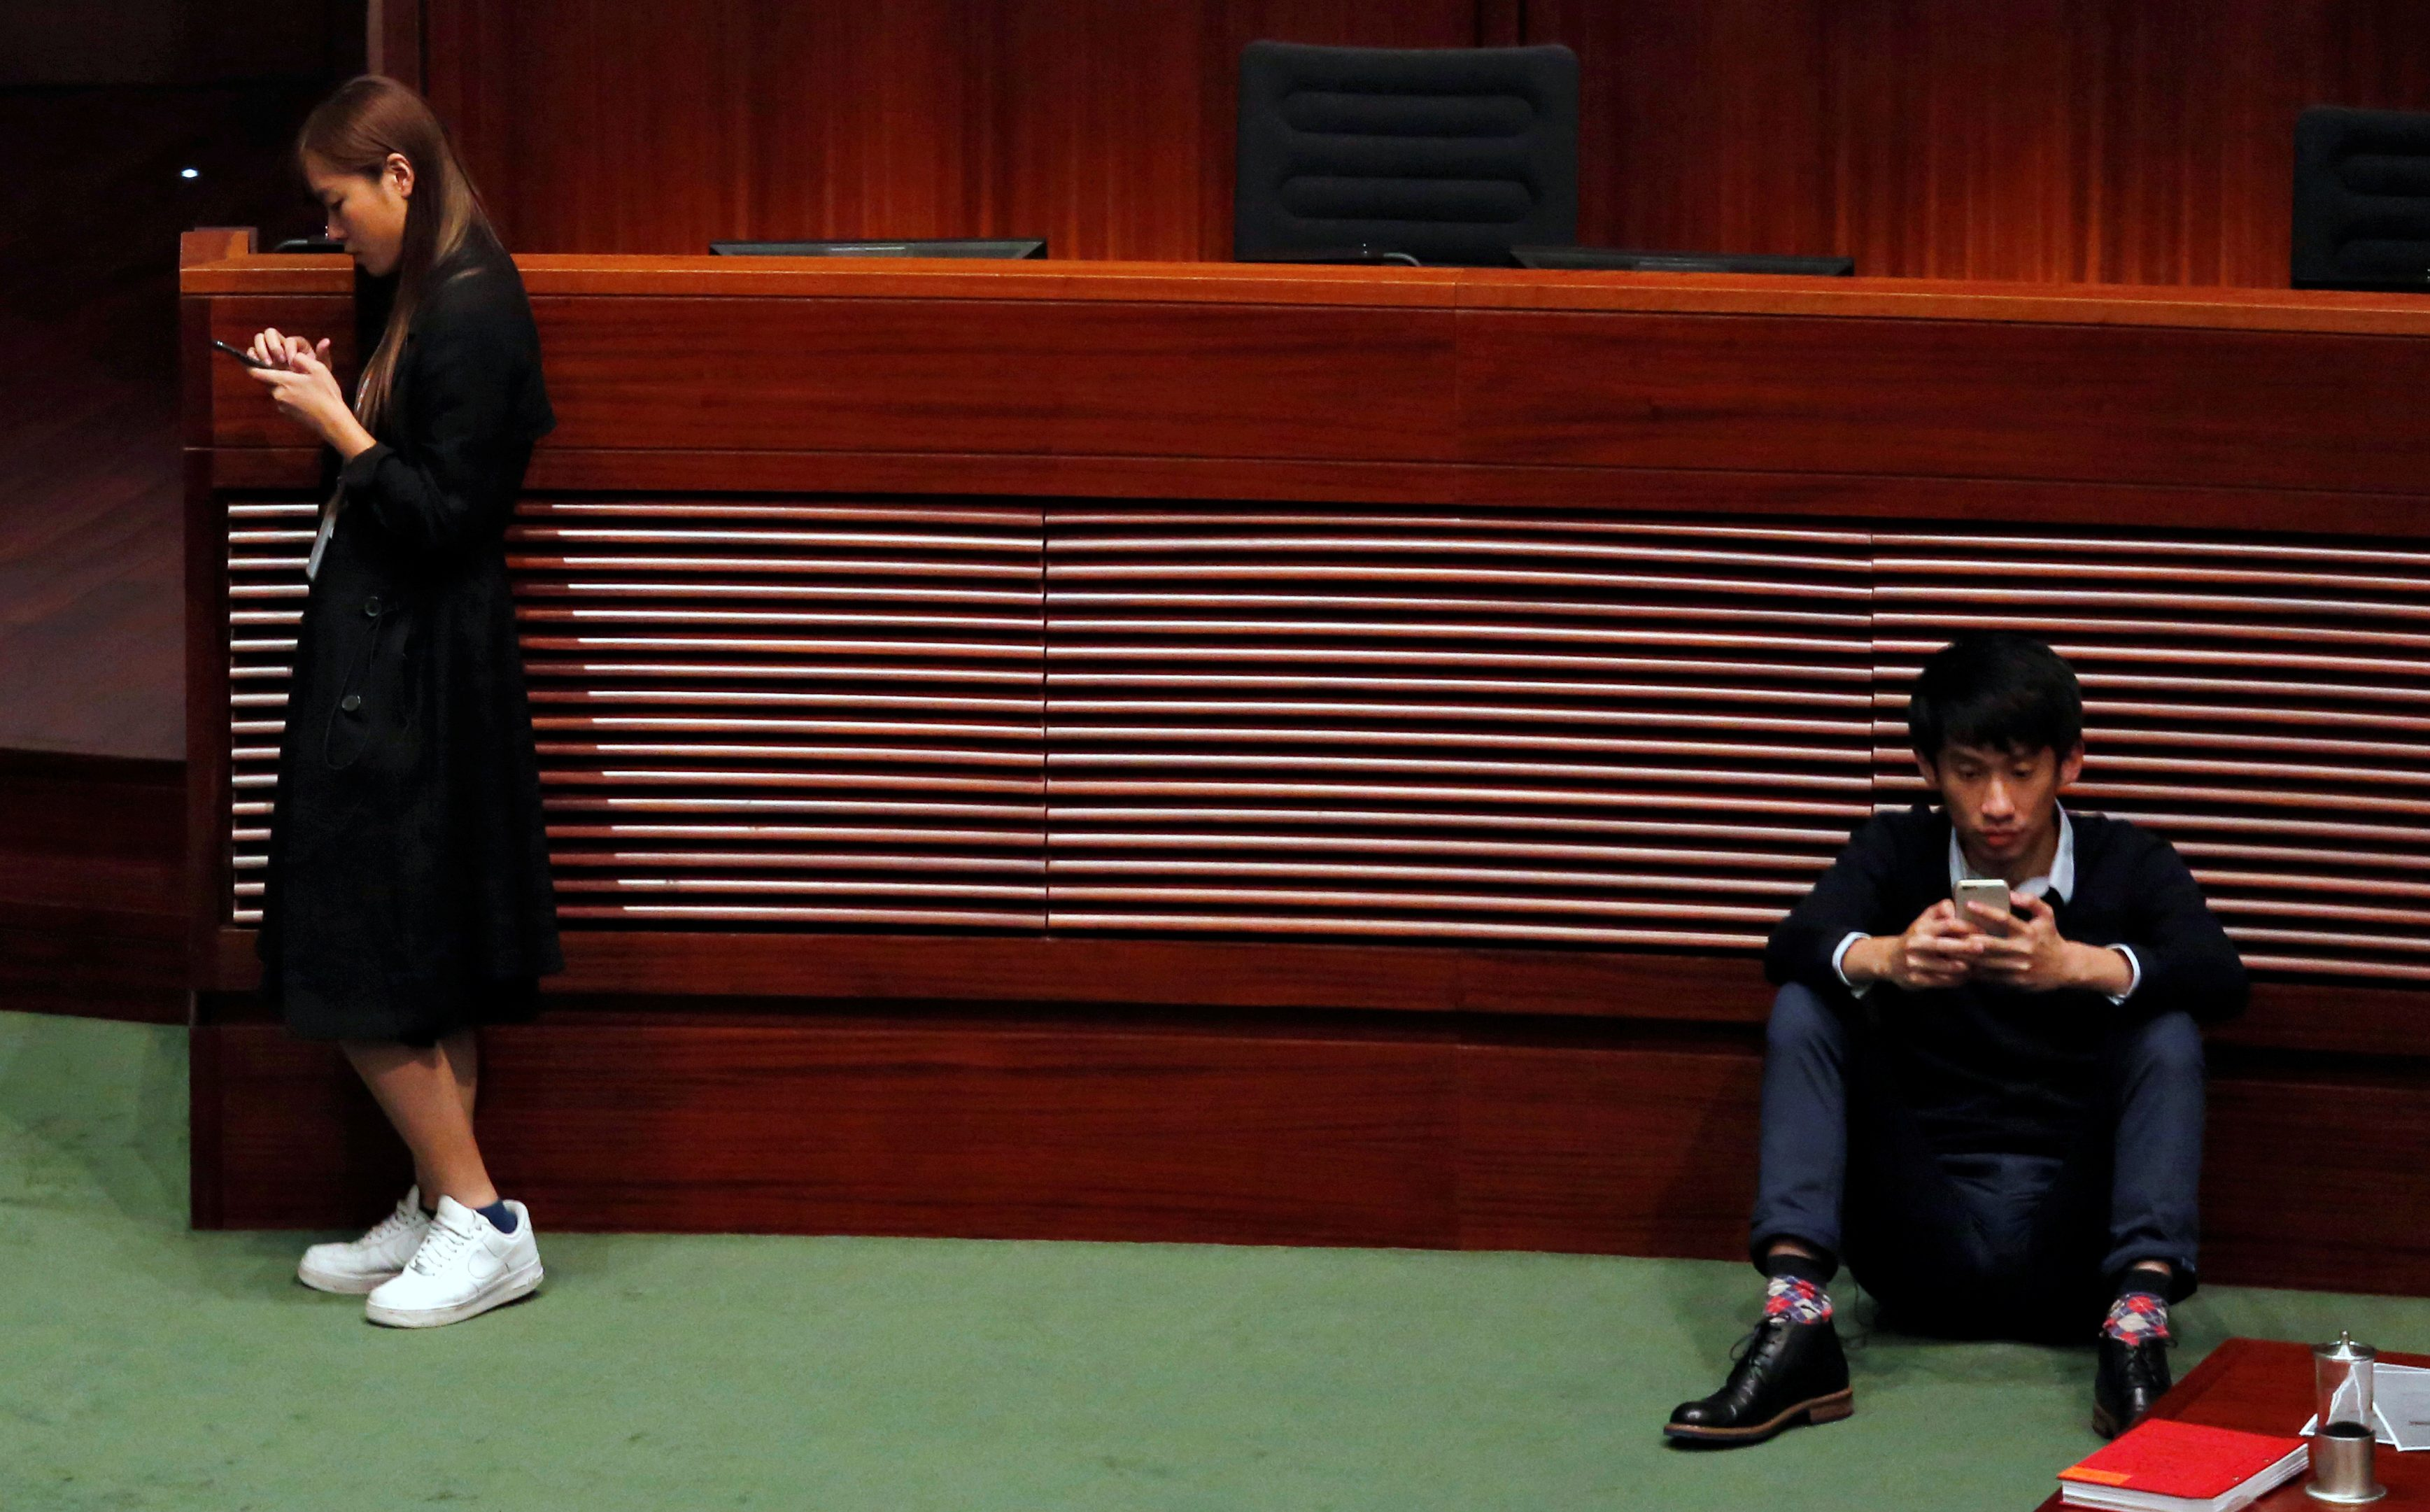 Newly elected pro-democracy lawmakers Yau and Leung check their smartphones at the Legislative Council in Hong Kong